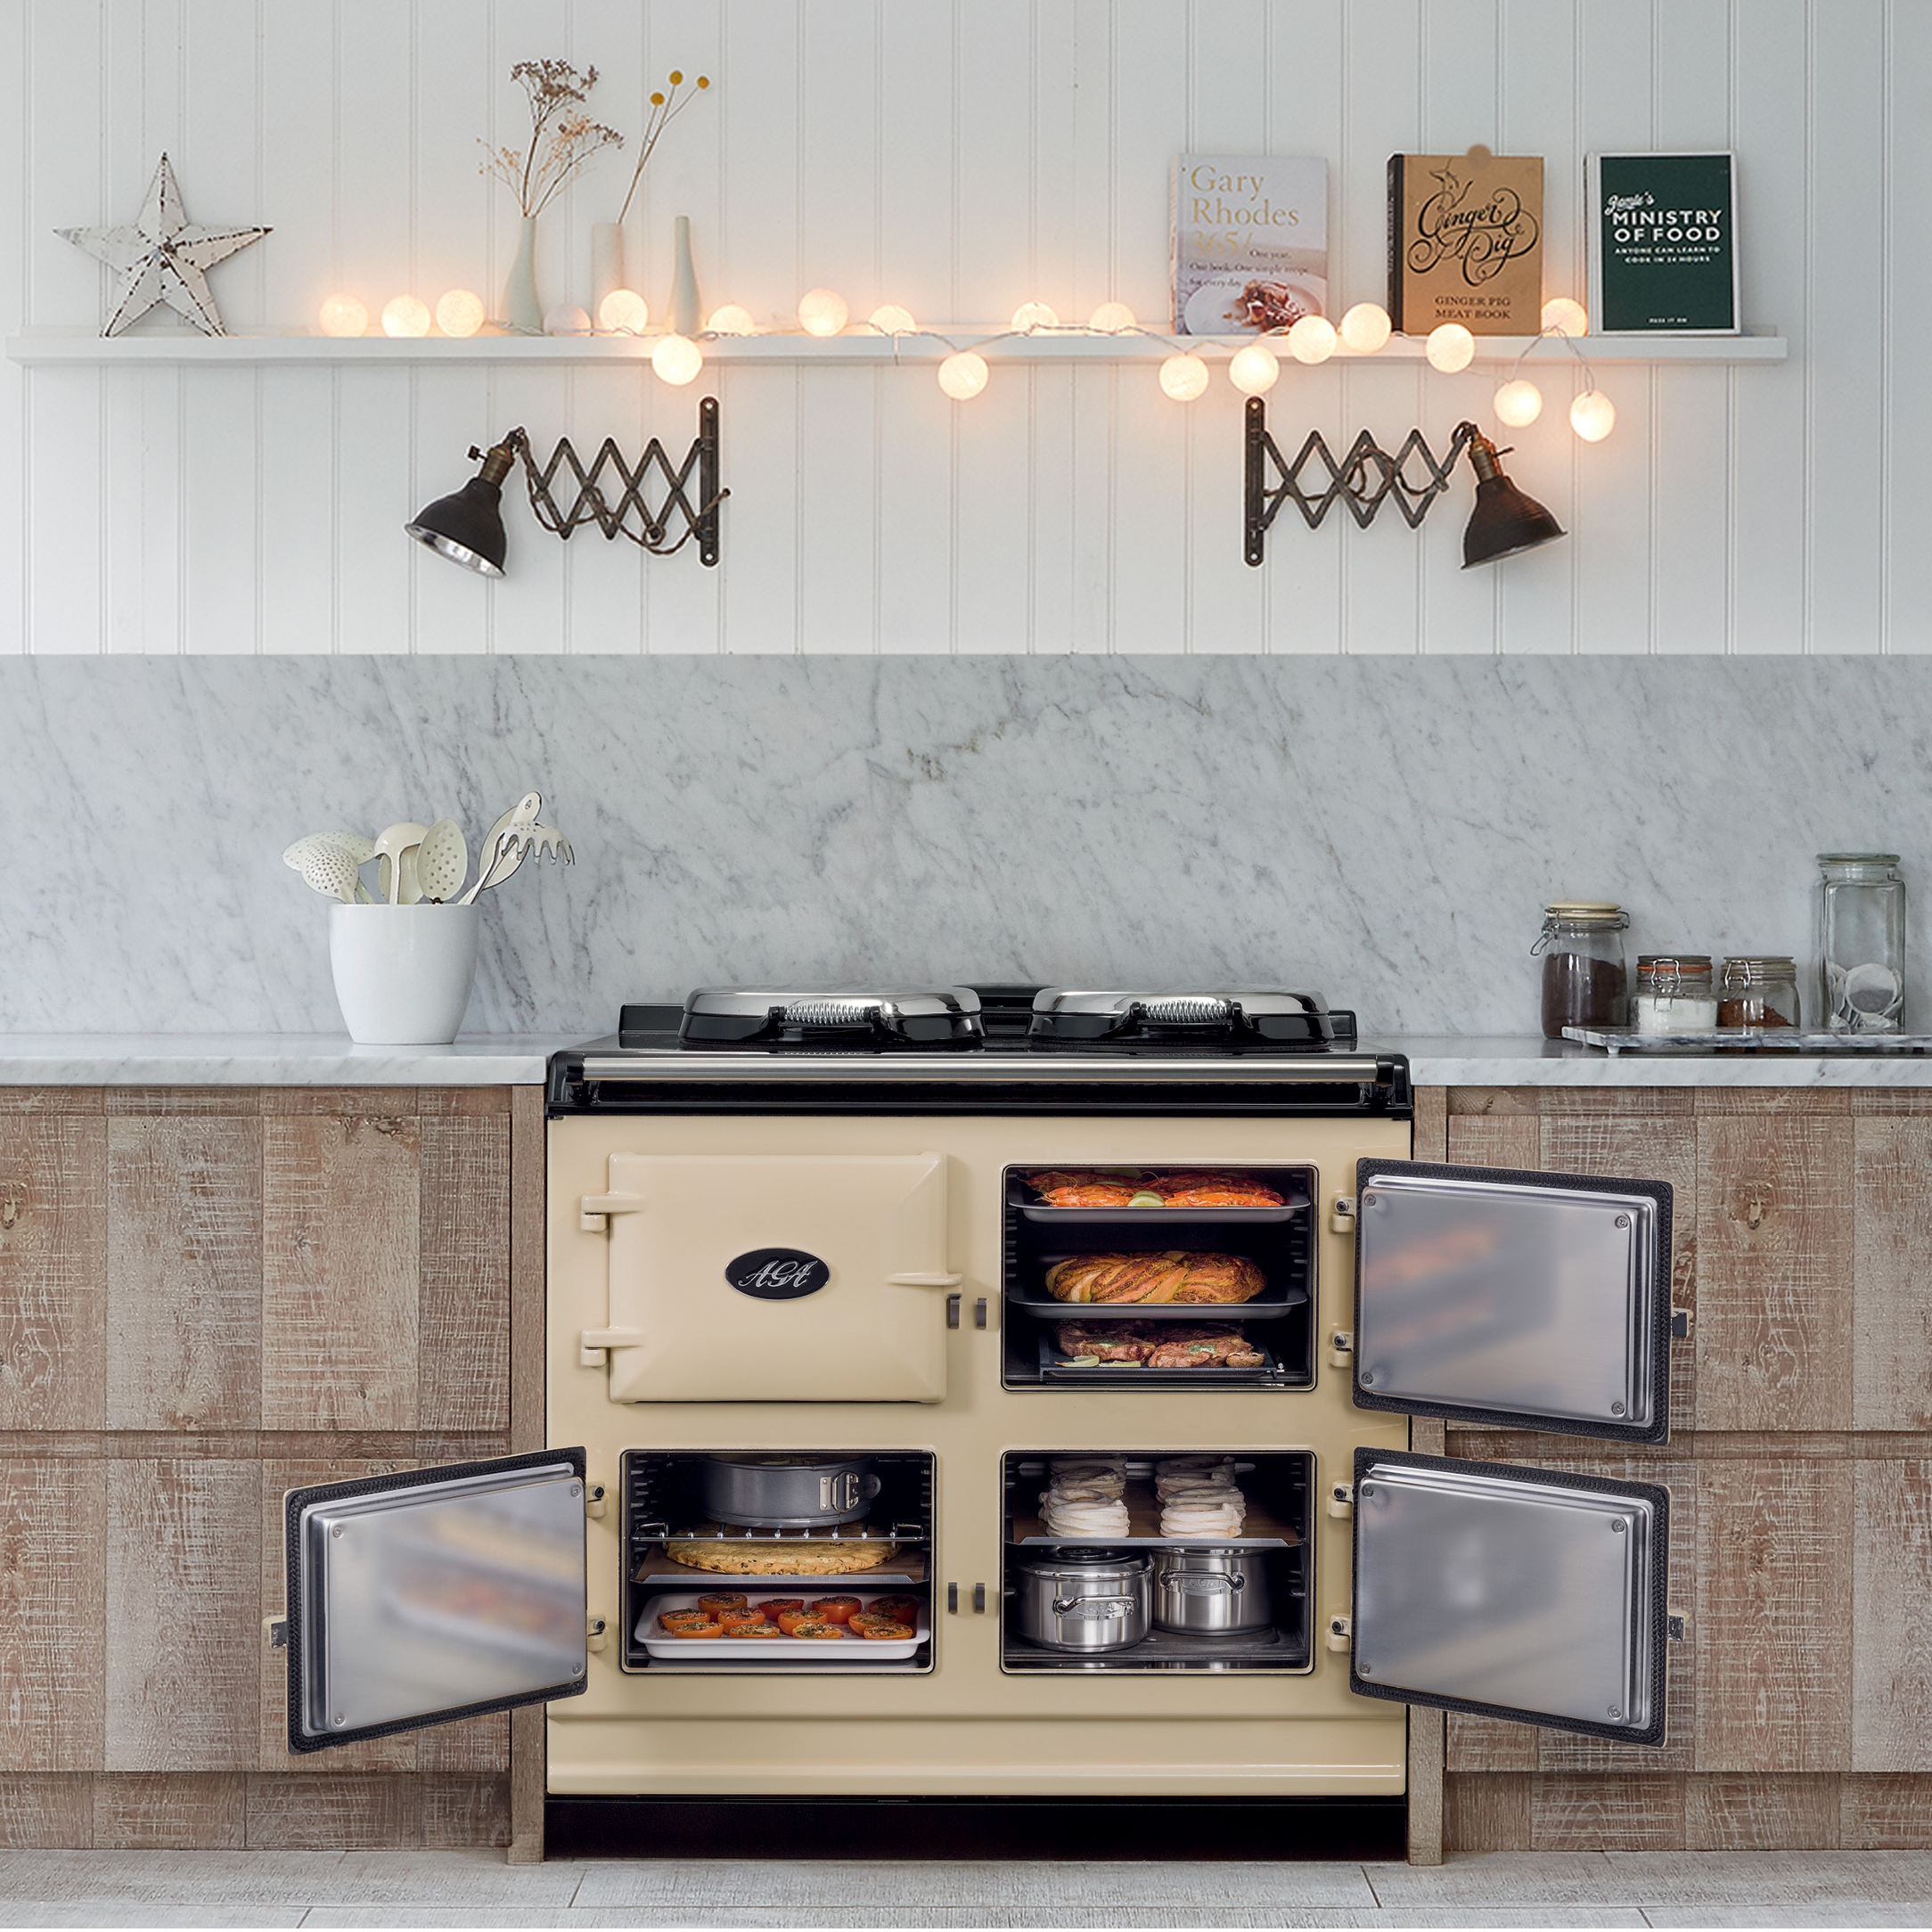 AGA Dual Control 3-oven cooker in Cream